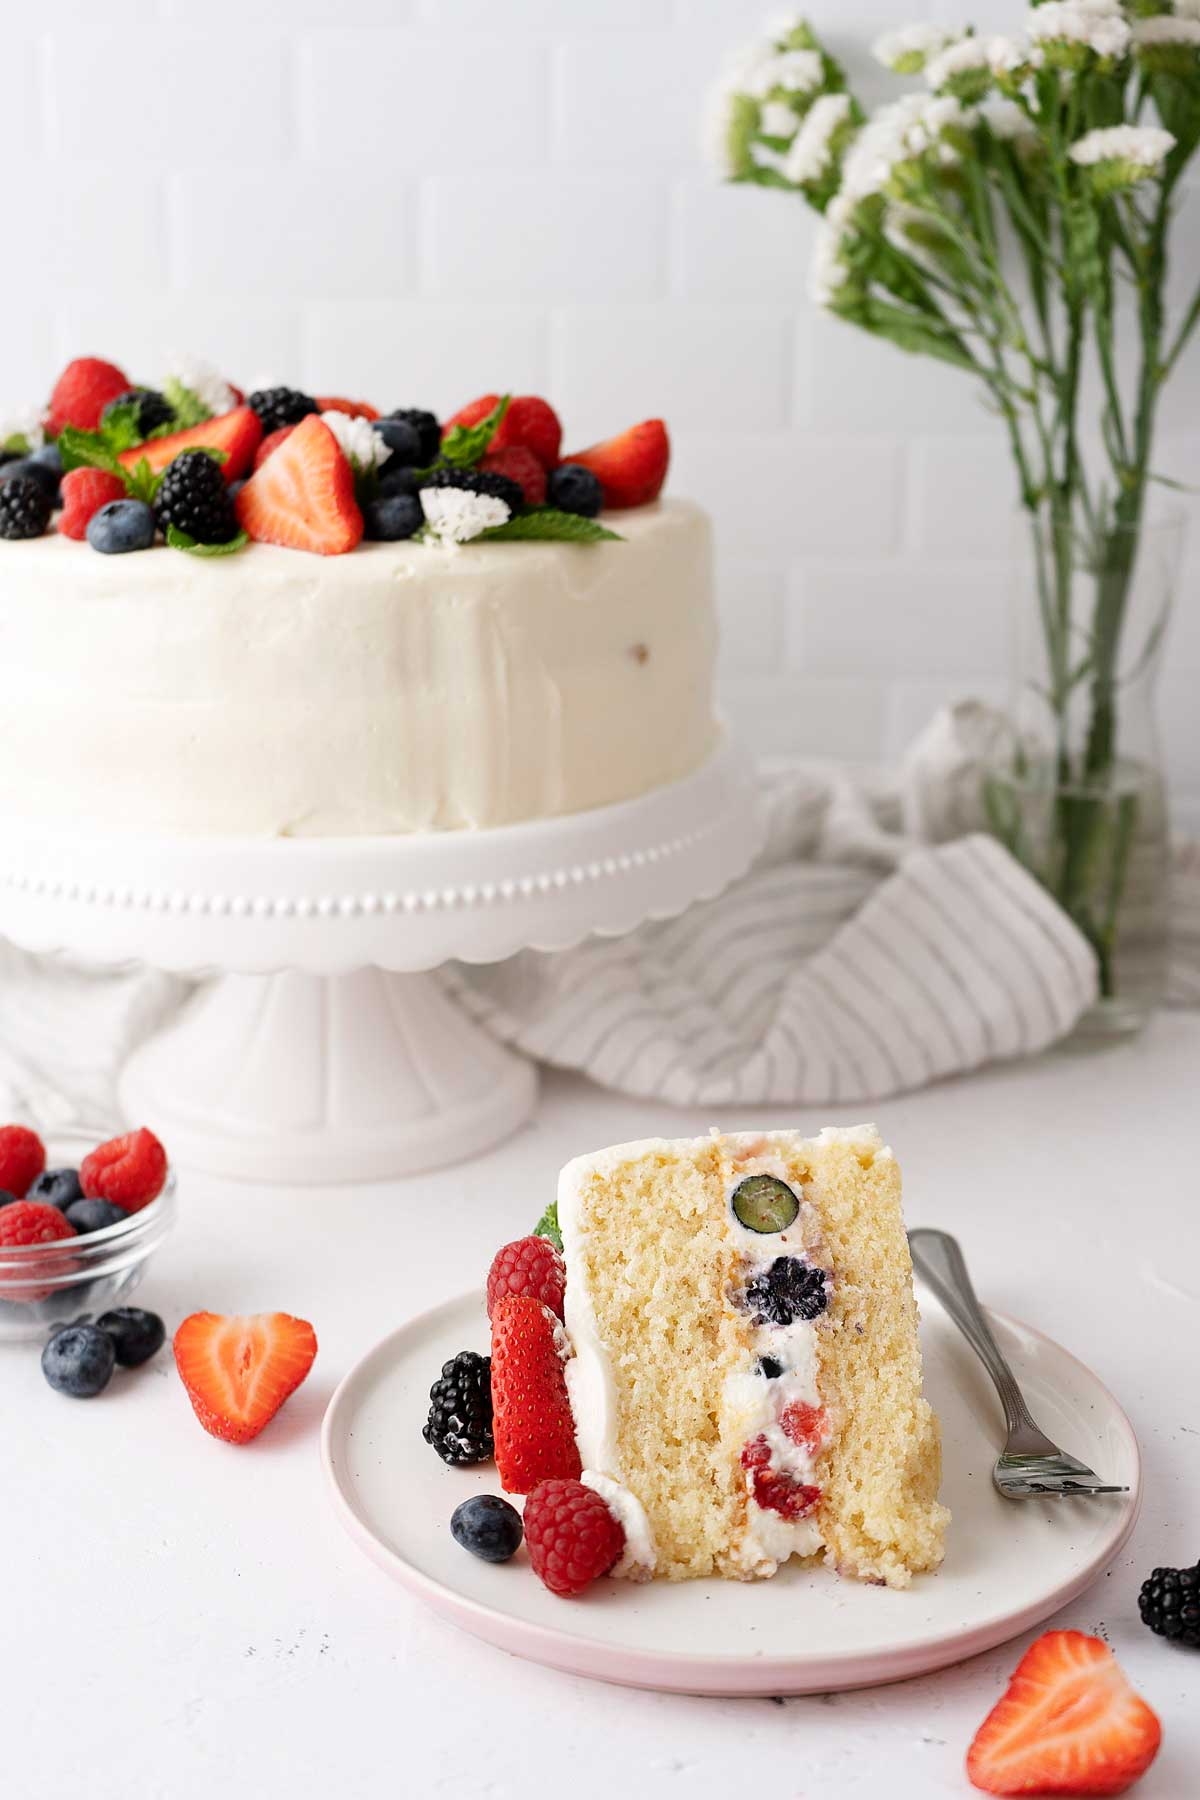 Portion of berry cake on a plate